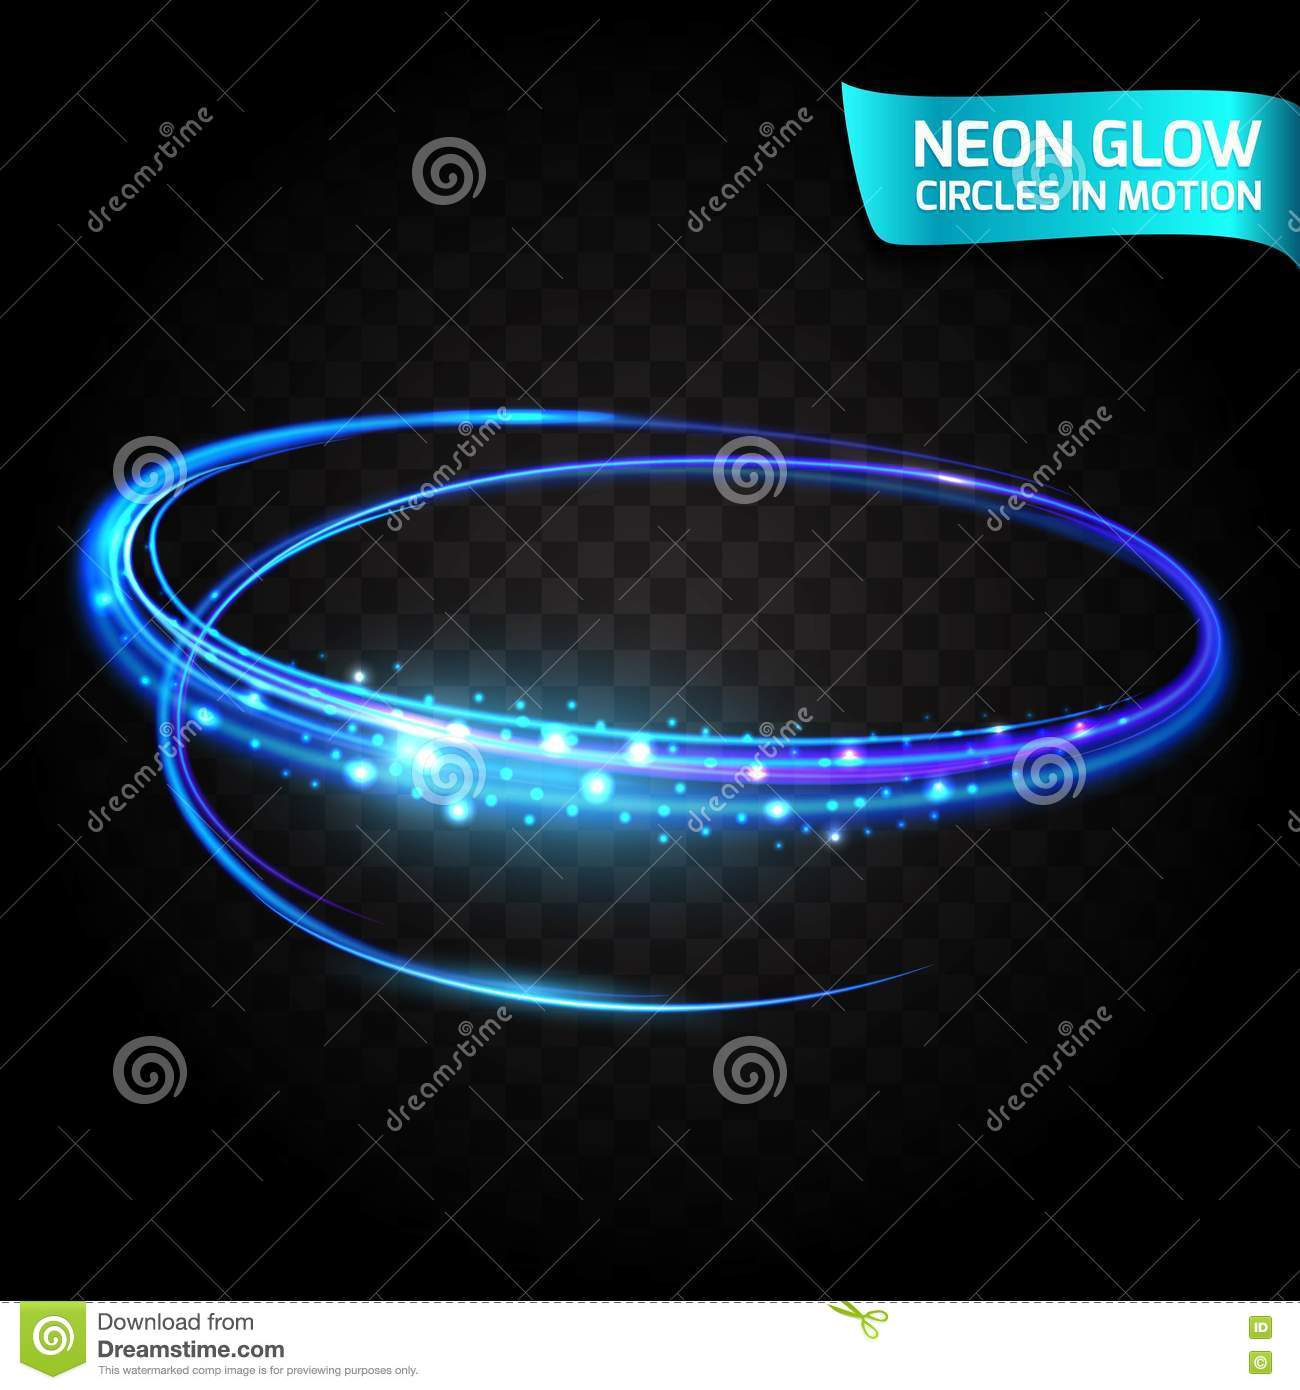 Holiday Lights In Abstract Slow Shutter >> Neon Glow Circles In Motion Blurred Edges Bright Glow Glare